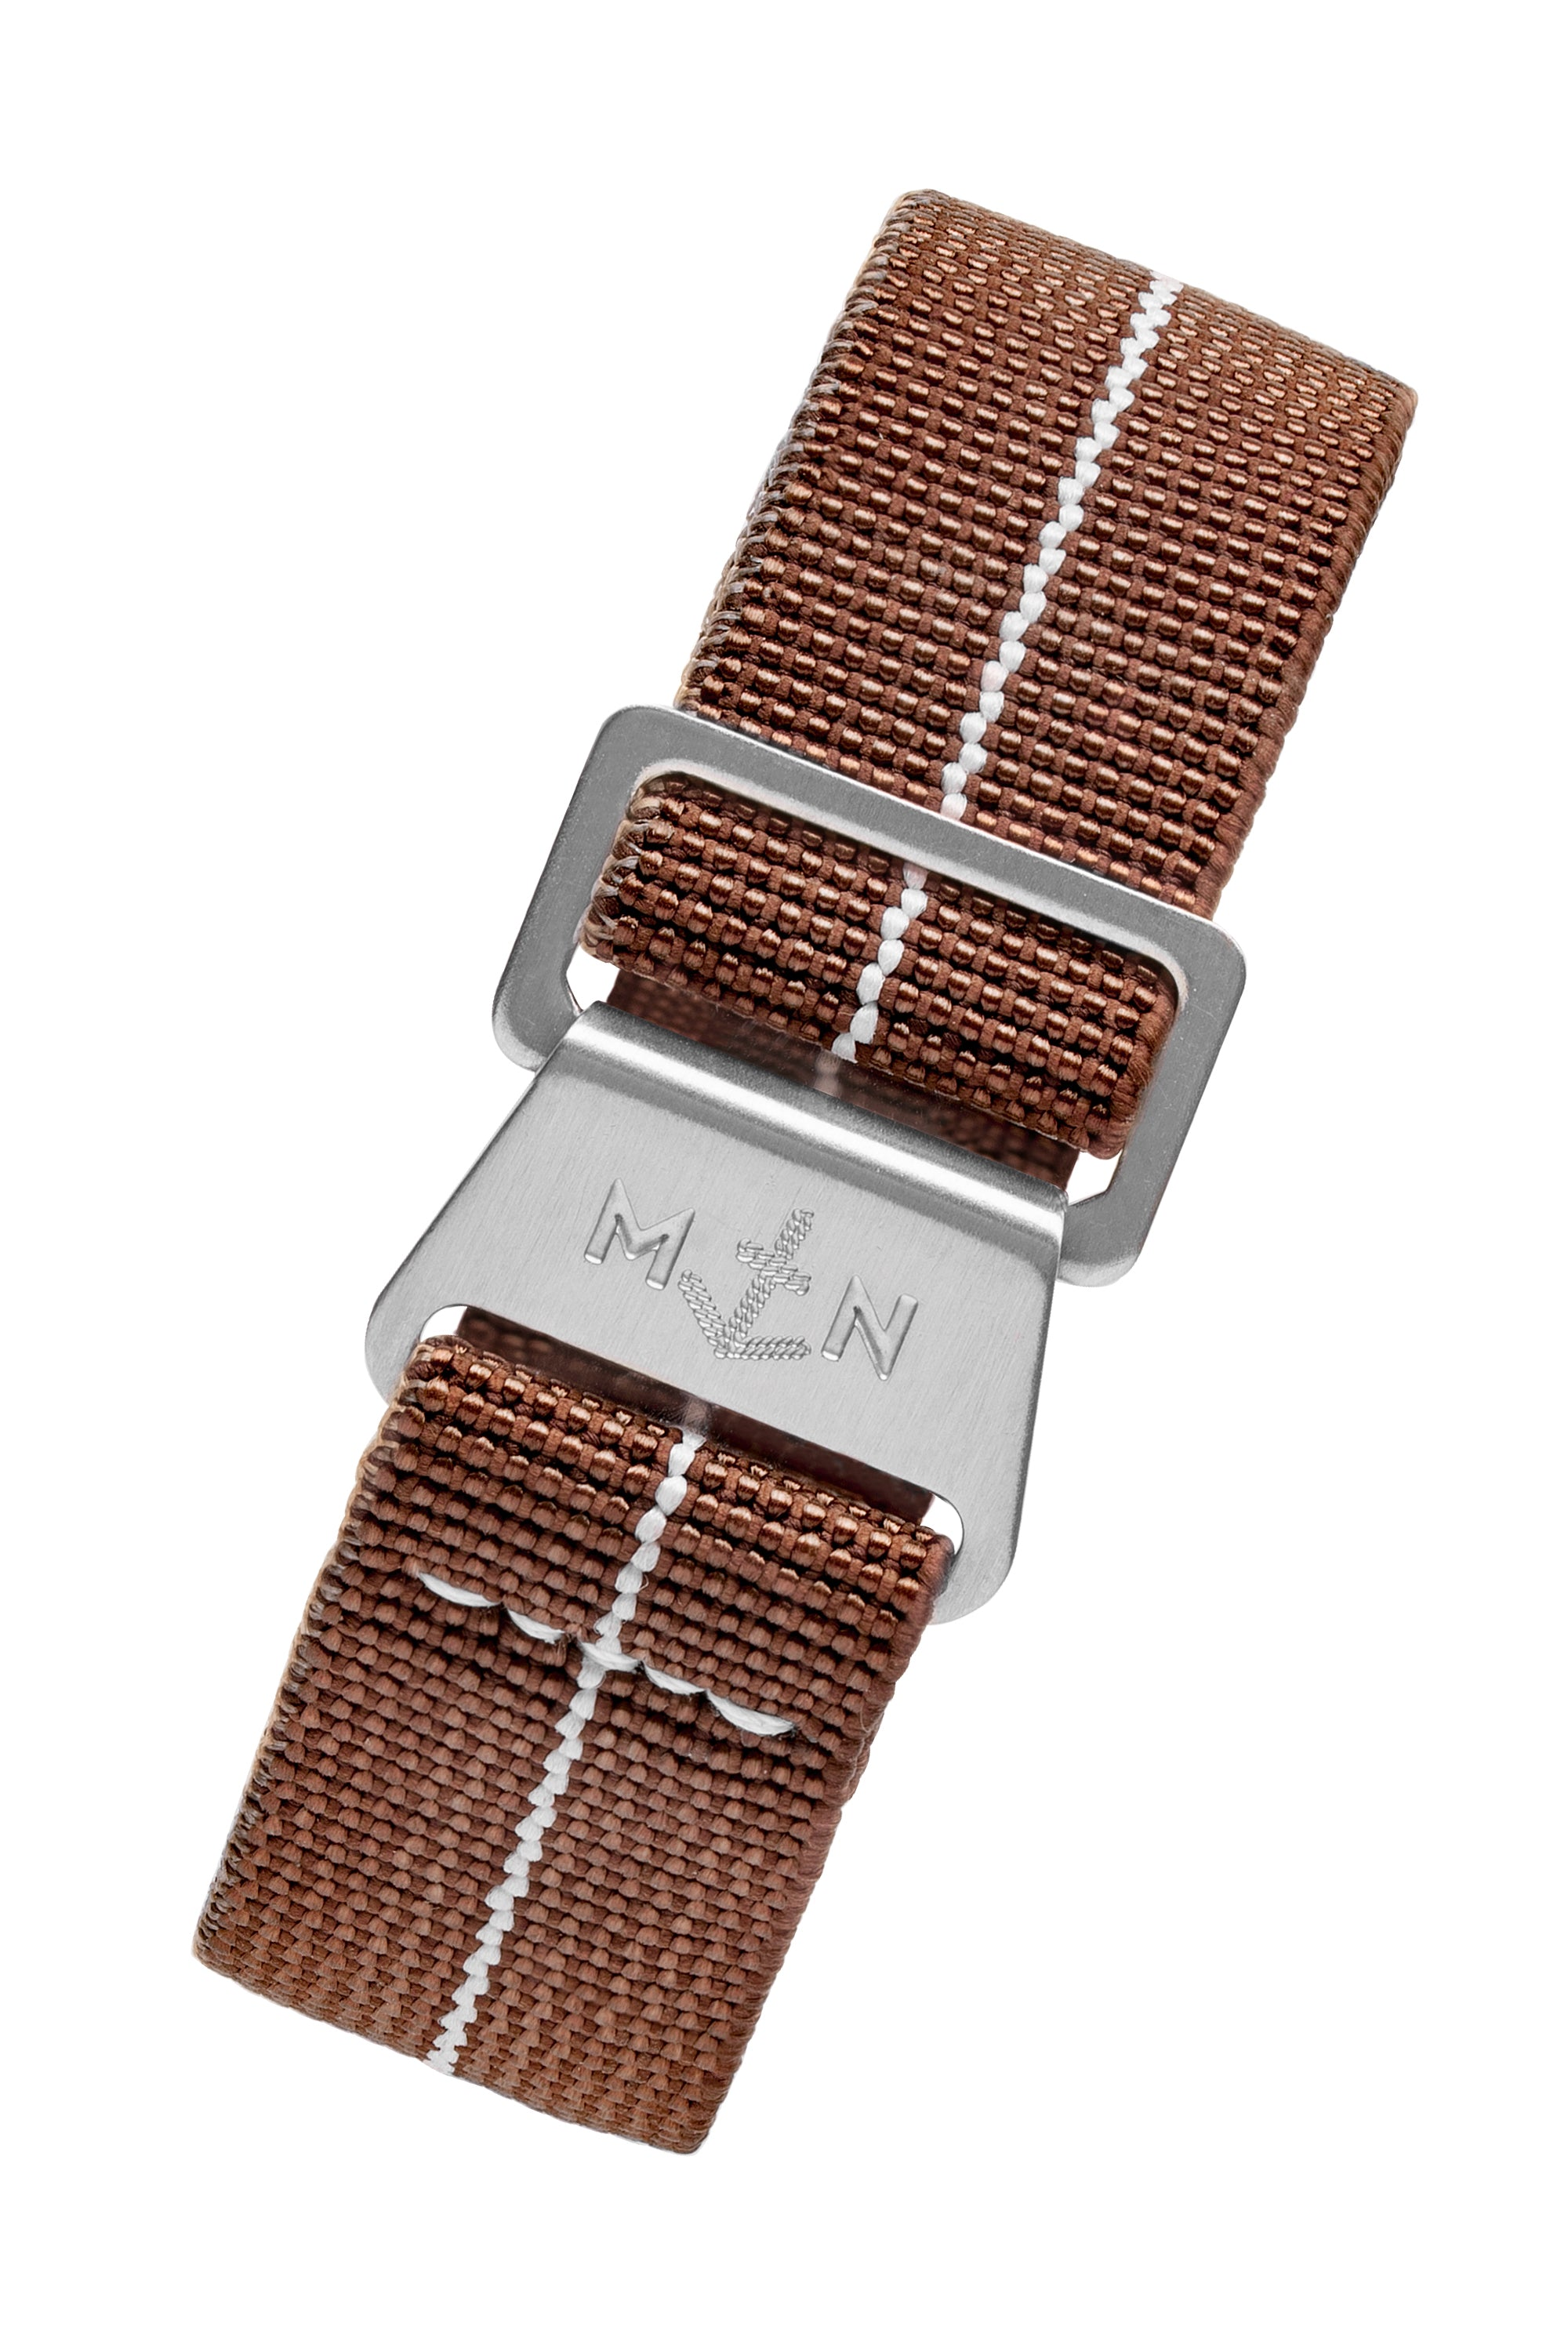 Erika's Originals CHESTNUT MN™ Limited Edition Strap with WHITE Centerline - BRUSHED Hardware